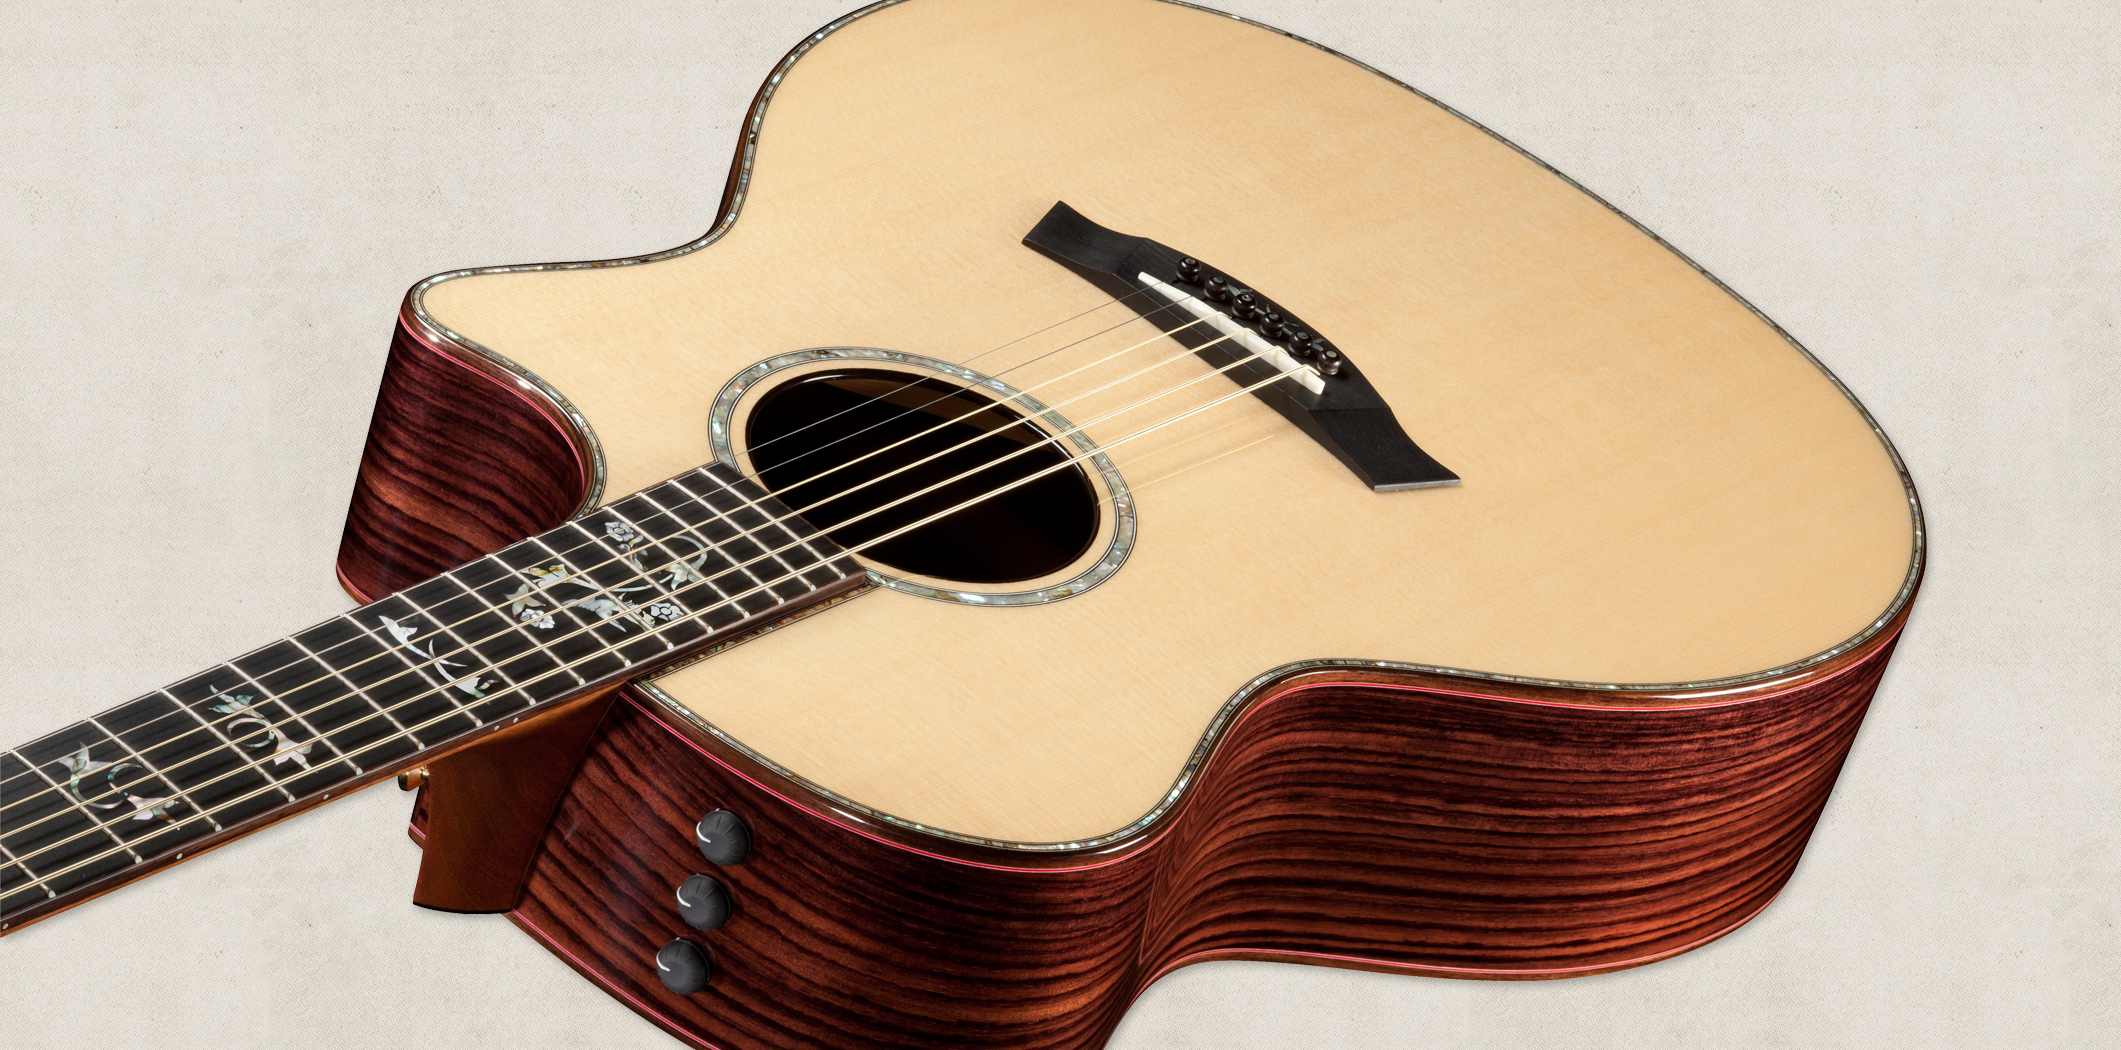 914ce | Taylor Guitars